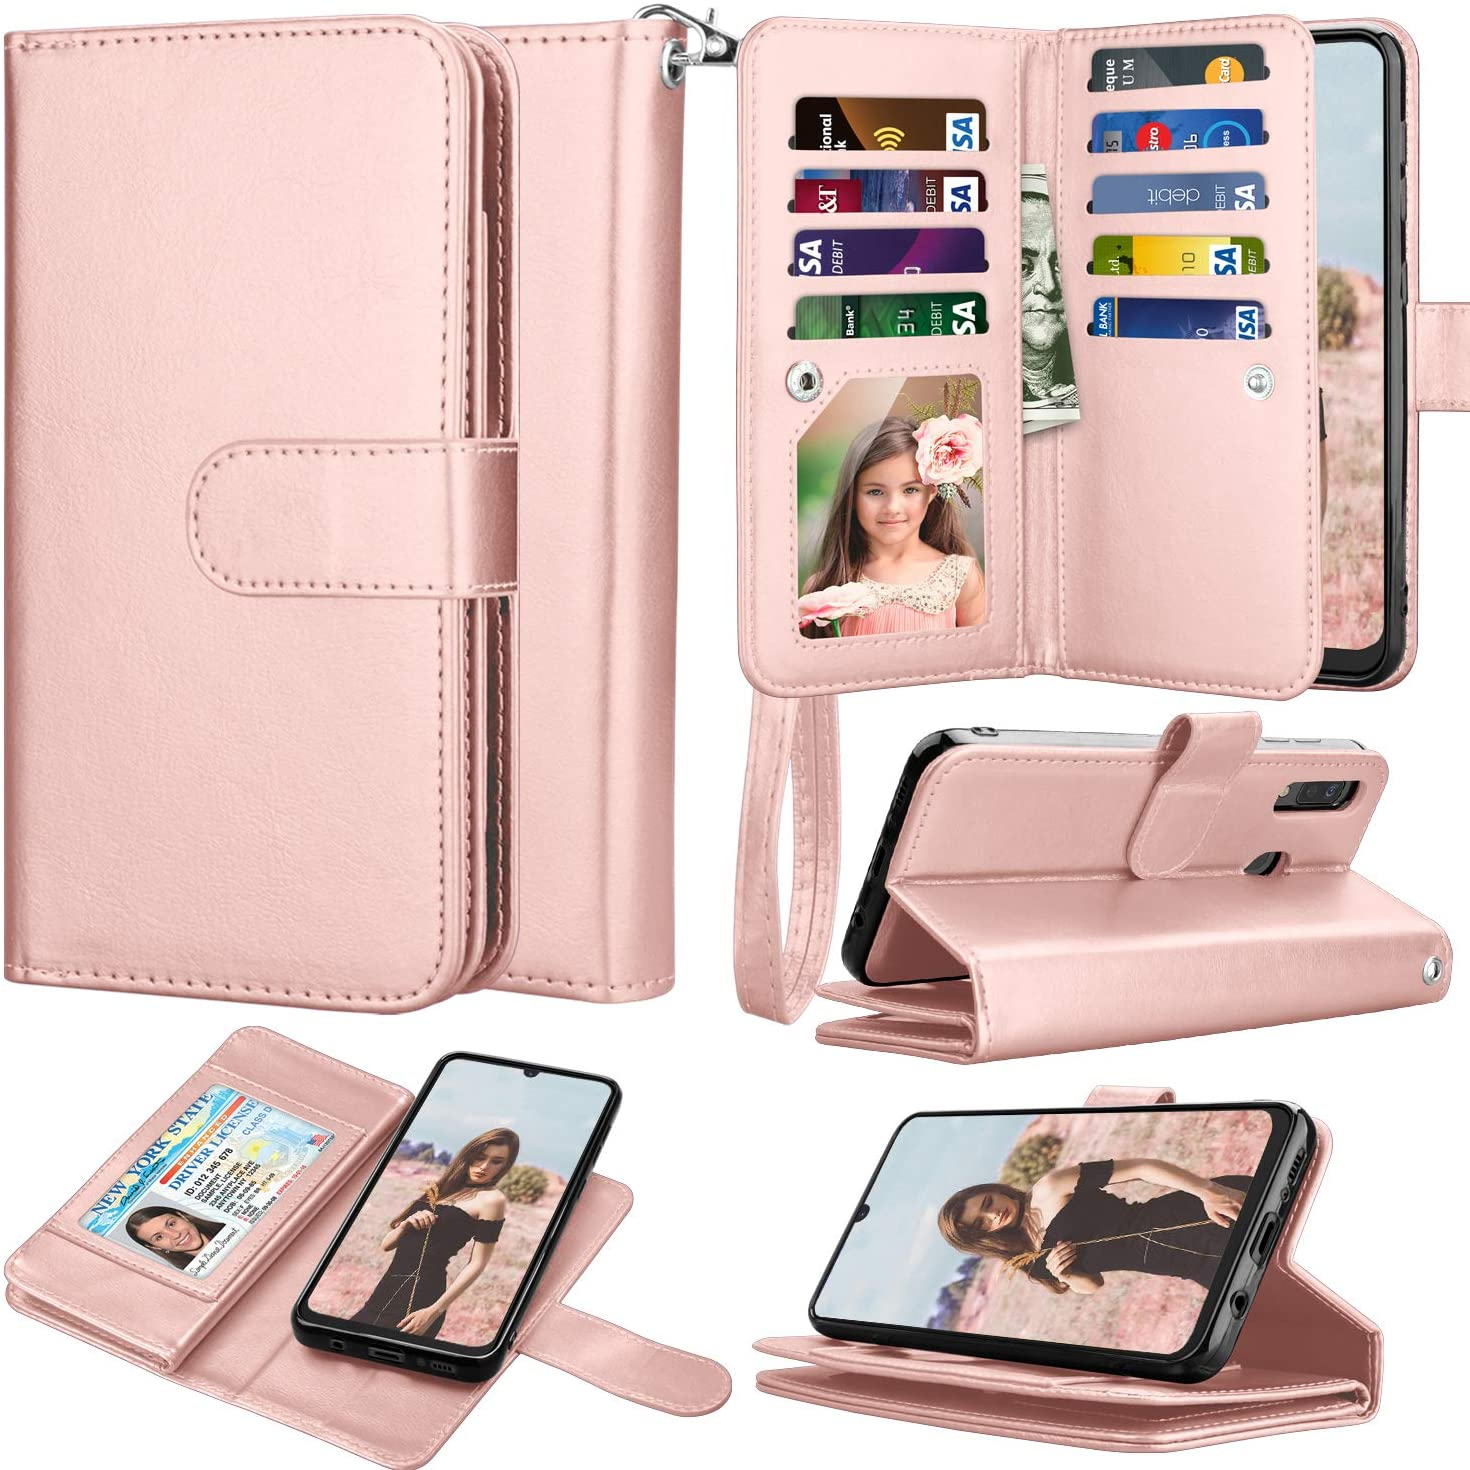 Takfox Wallet Case for Samsung Galaxy A20, Galaxy A20 Case Wallet PU Leather with 9 Card Slots Holder Folio Flip Magnetic Detachable Phone Case & Wrist Strap for Samsung Galaxy A20 (2019)-Rose Gold